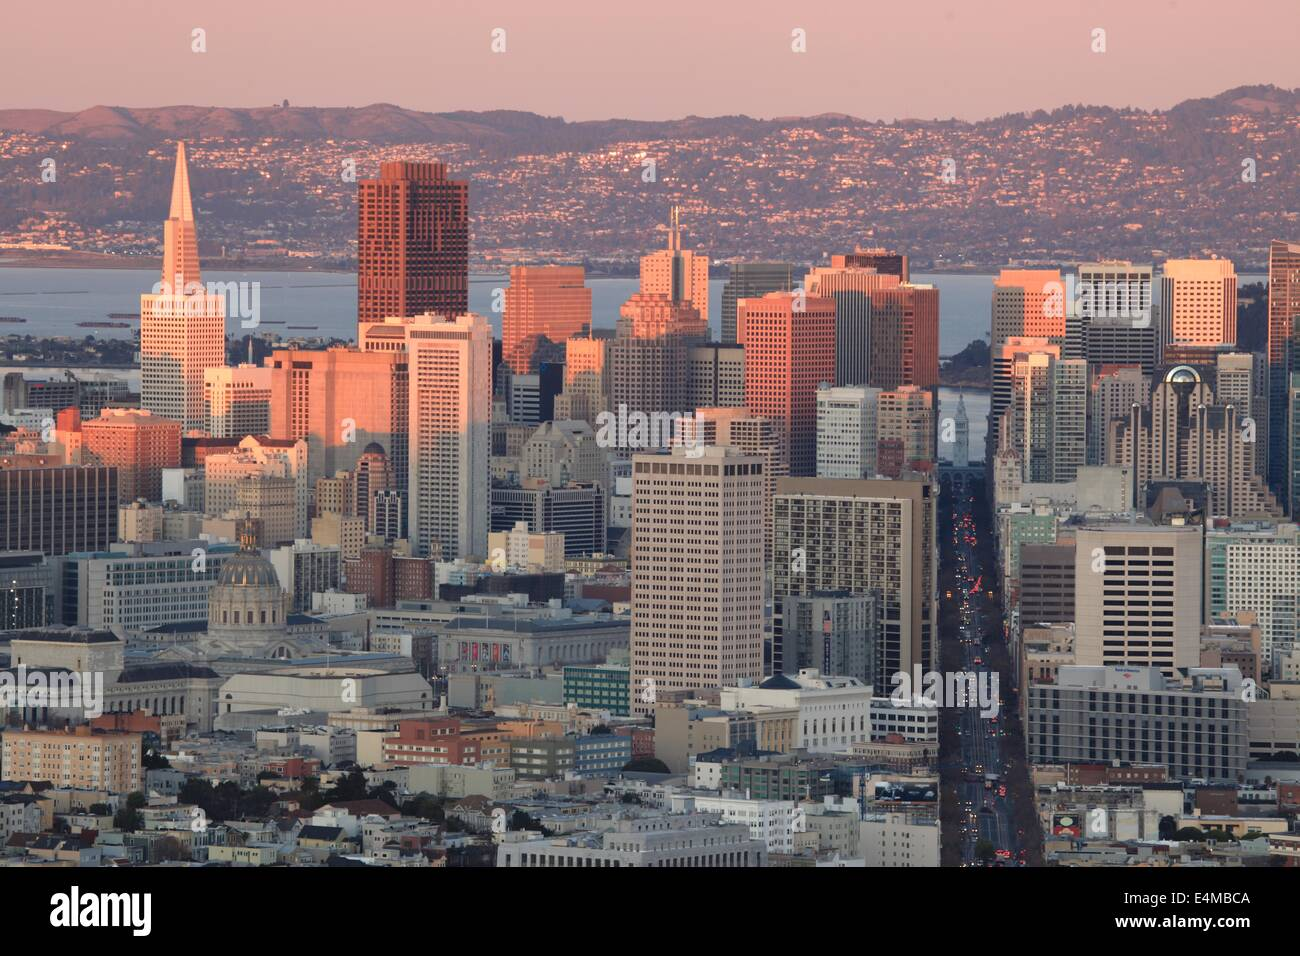 It was a fantastically clear evening on Saturday, and I snapped a few images of last light on downtown SF while Stock Photo